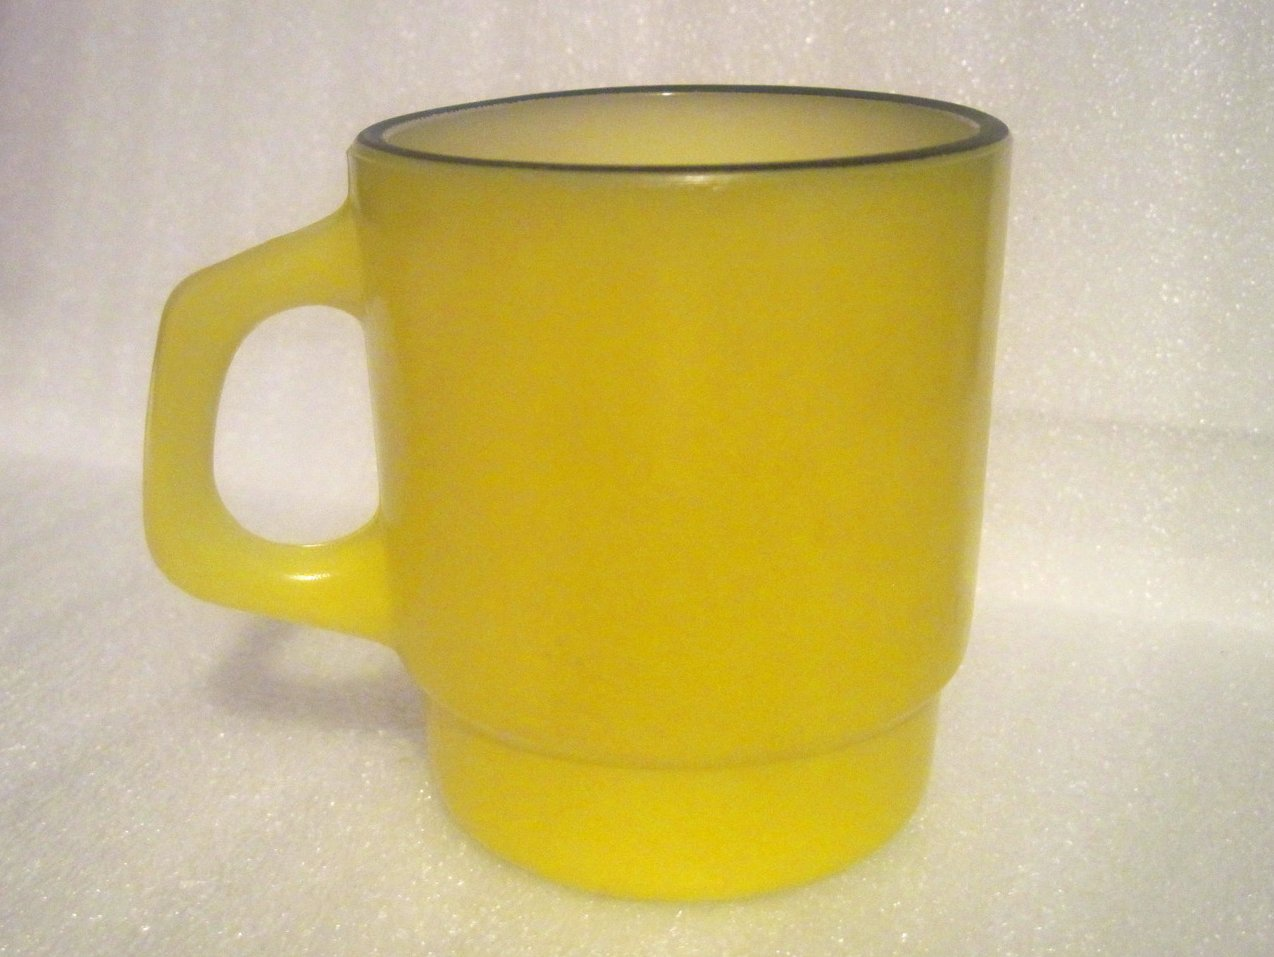 509dafcc59b Coffee Mug Fire King Yellow Black Rim Stackable Rare Handle Vintage. '.